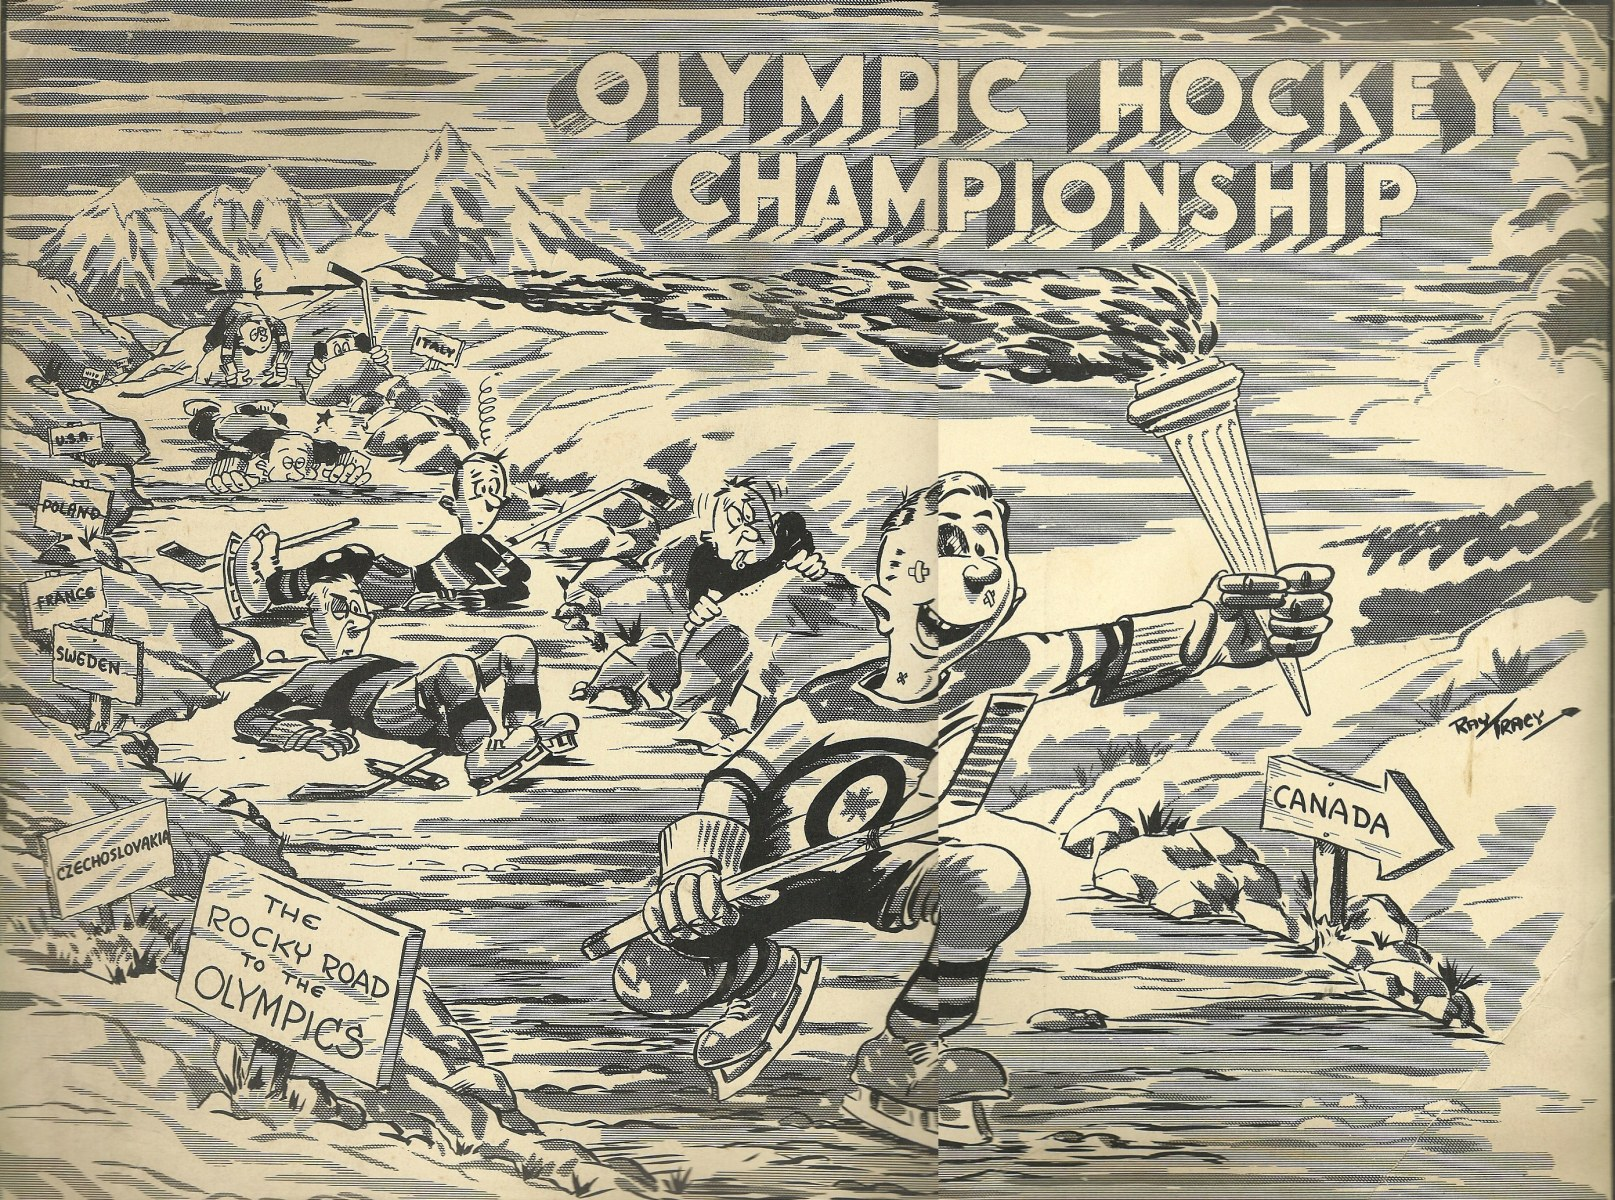 Photo: Cartoon Celebrating RCAF Flyers Victories at 1948 Winter Olympics